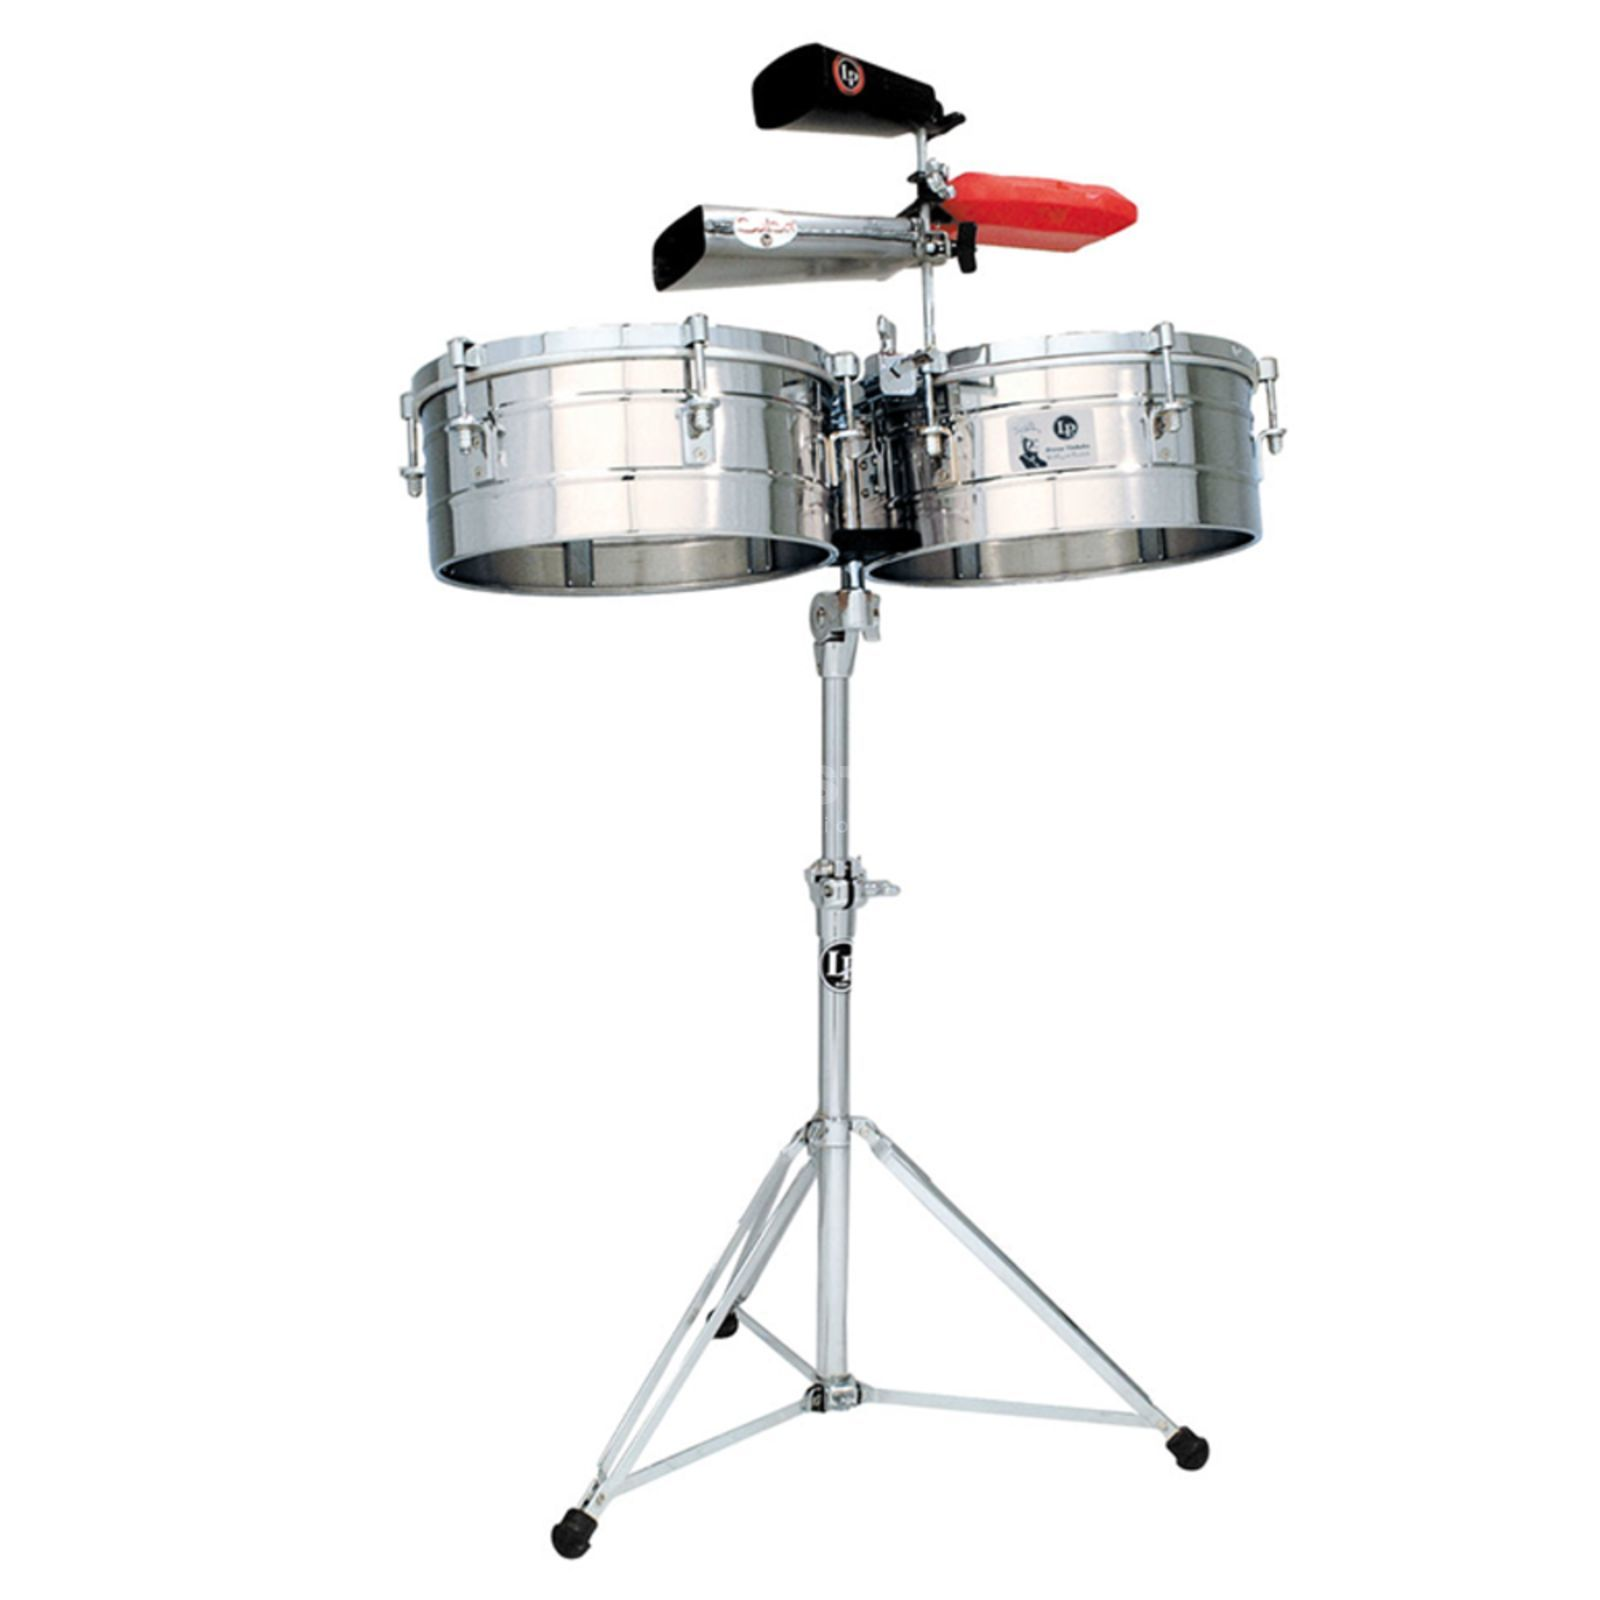 "Latin Percussion Timbales Tito Puente LP257-S, 14"" & 15"", Stainless Steel Produktbild"